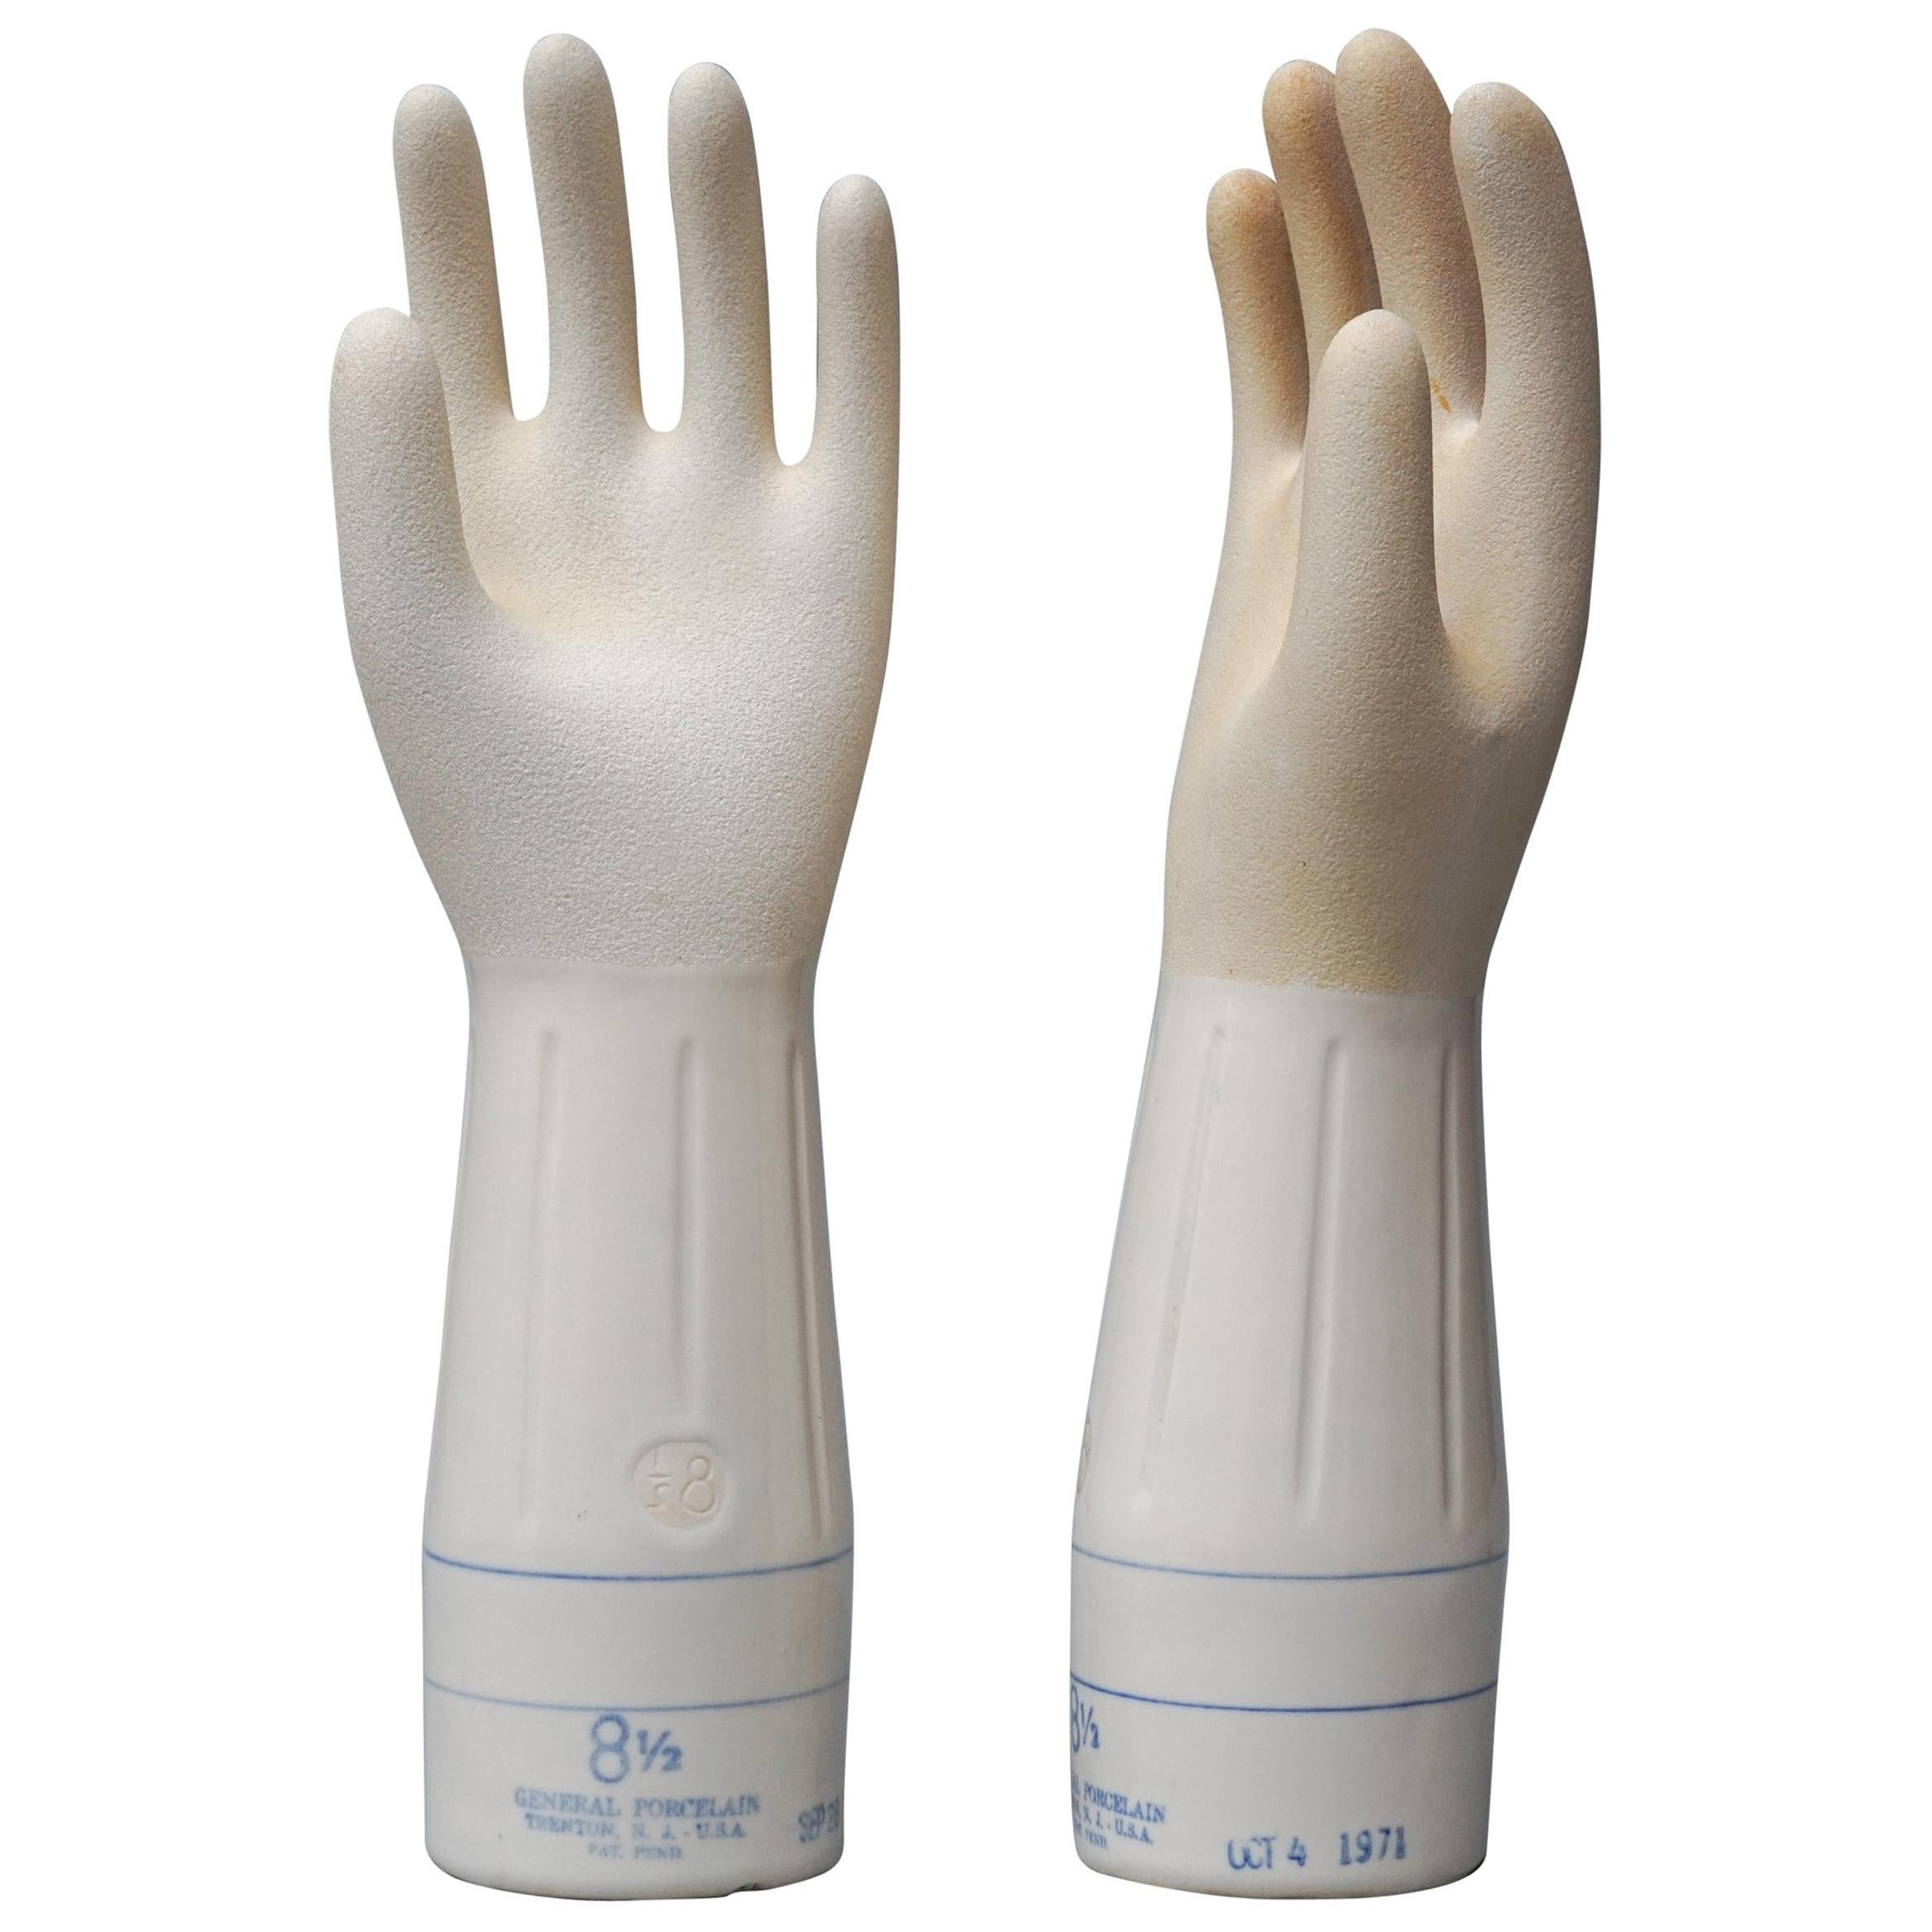 Pair of 20th Century General Porcelain Trenton NJ, USA Industrial Glove Moulds